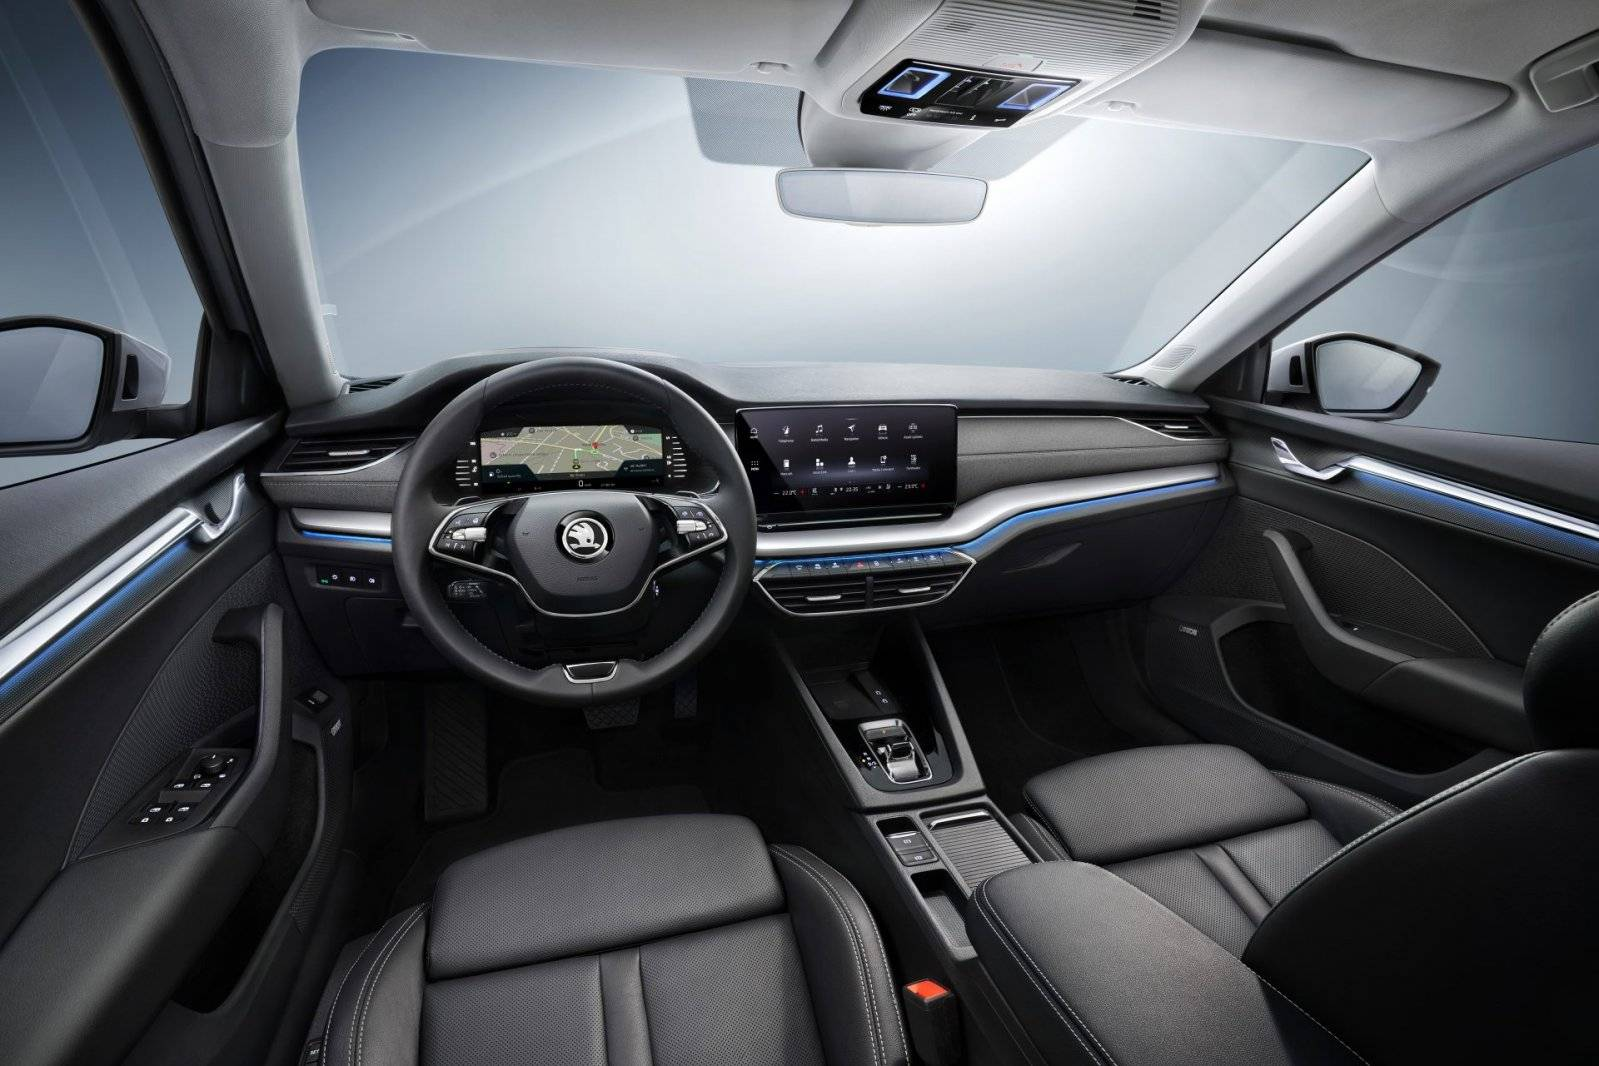 https://images.autowereld.com/high/skoda-octavia-2020-16-138844.jpg